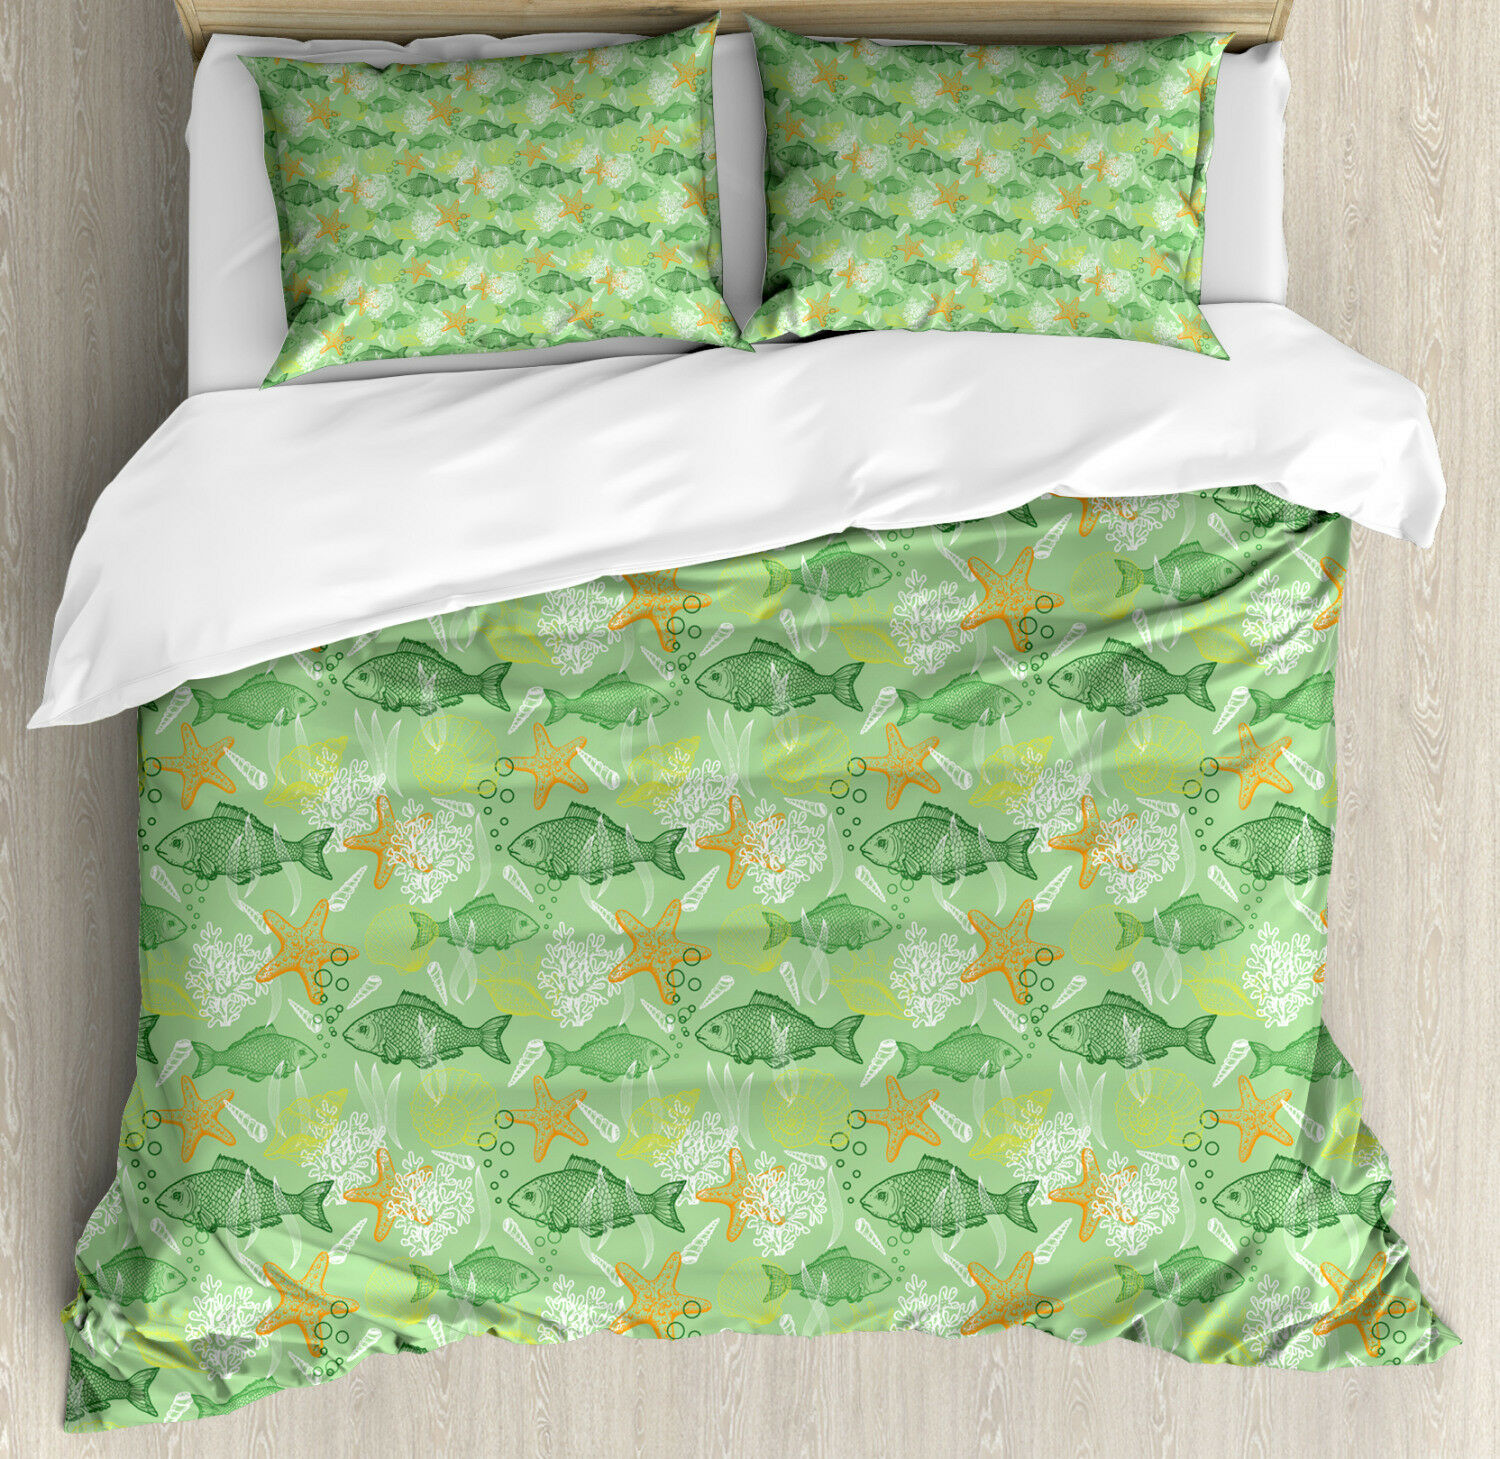 Fishes Duvet Cover Set with Pillow Shams Bass Starfish Seashell Print